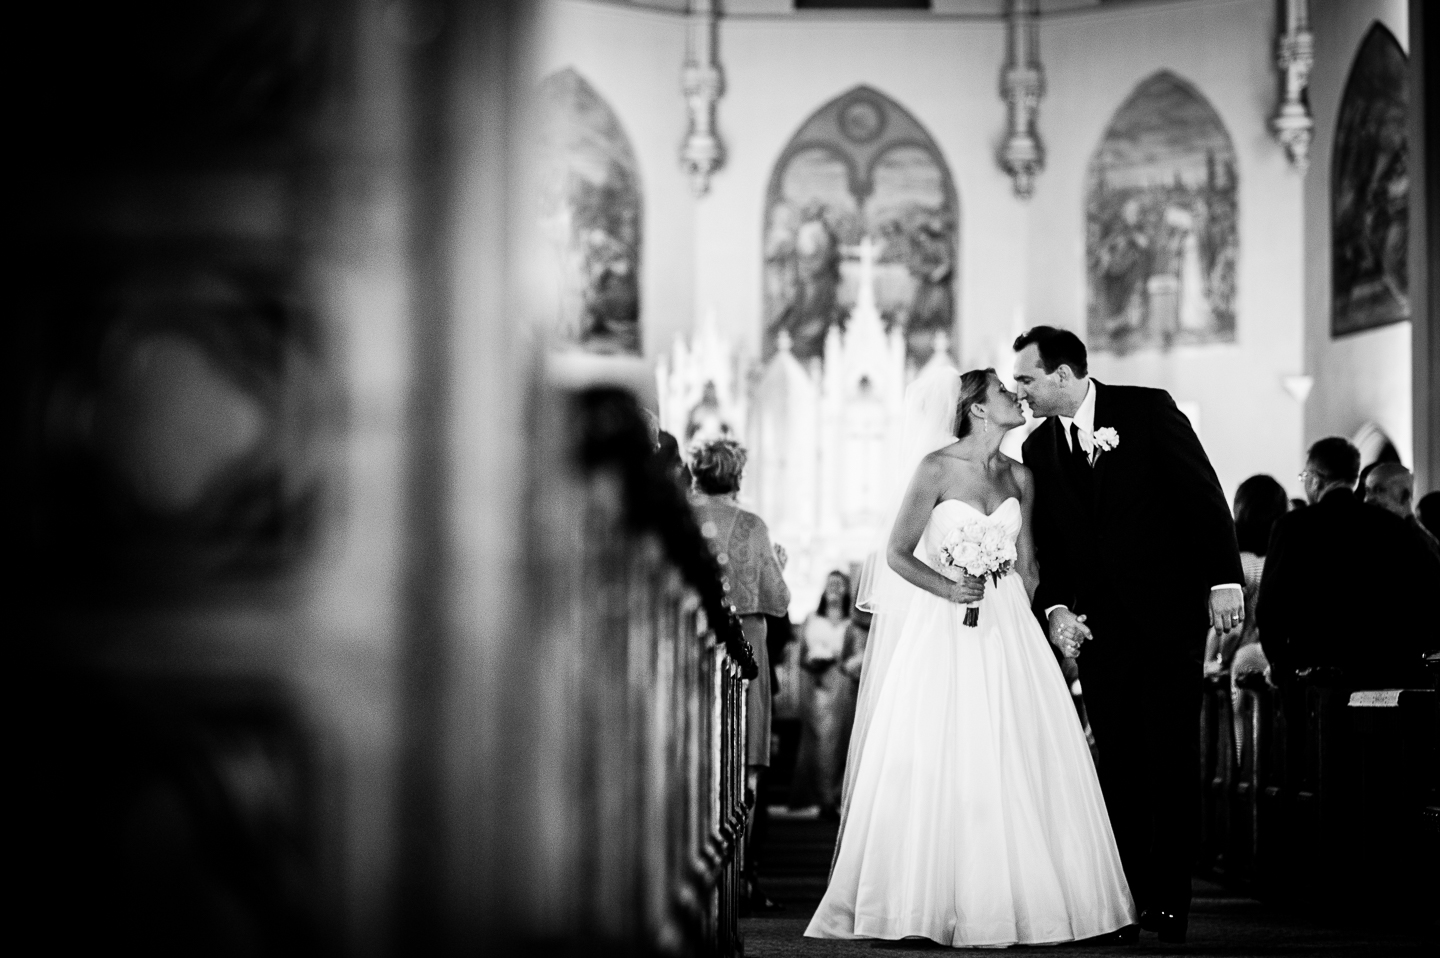 Newly married couple gives each other a kiss during their walk up the aisle as husband and wife